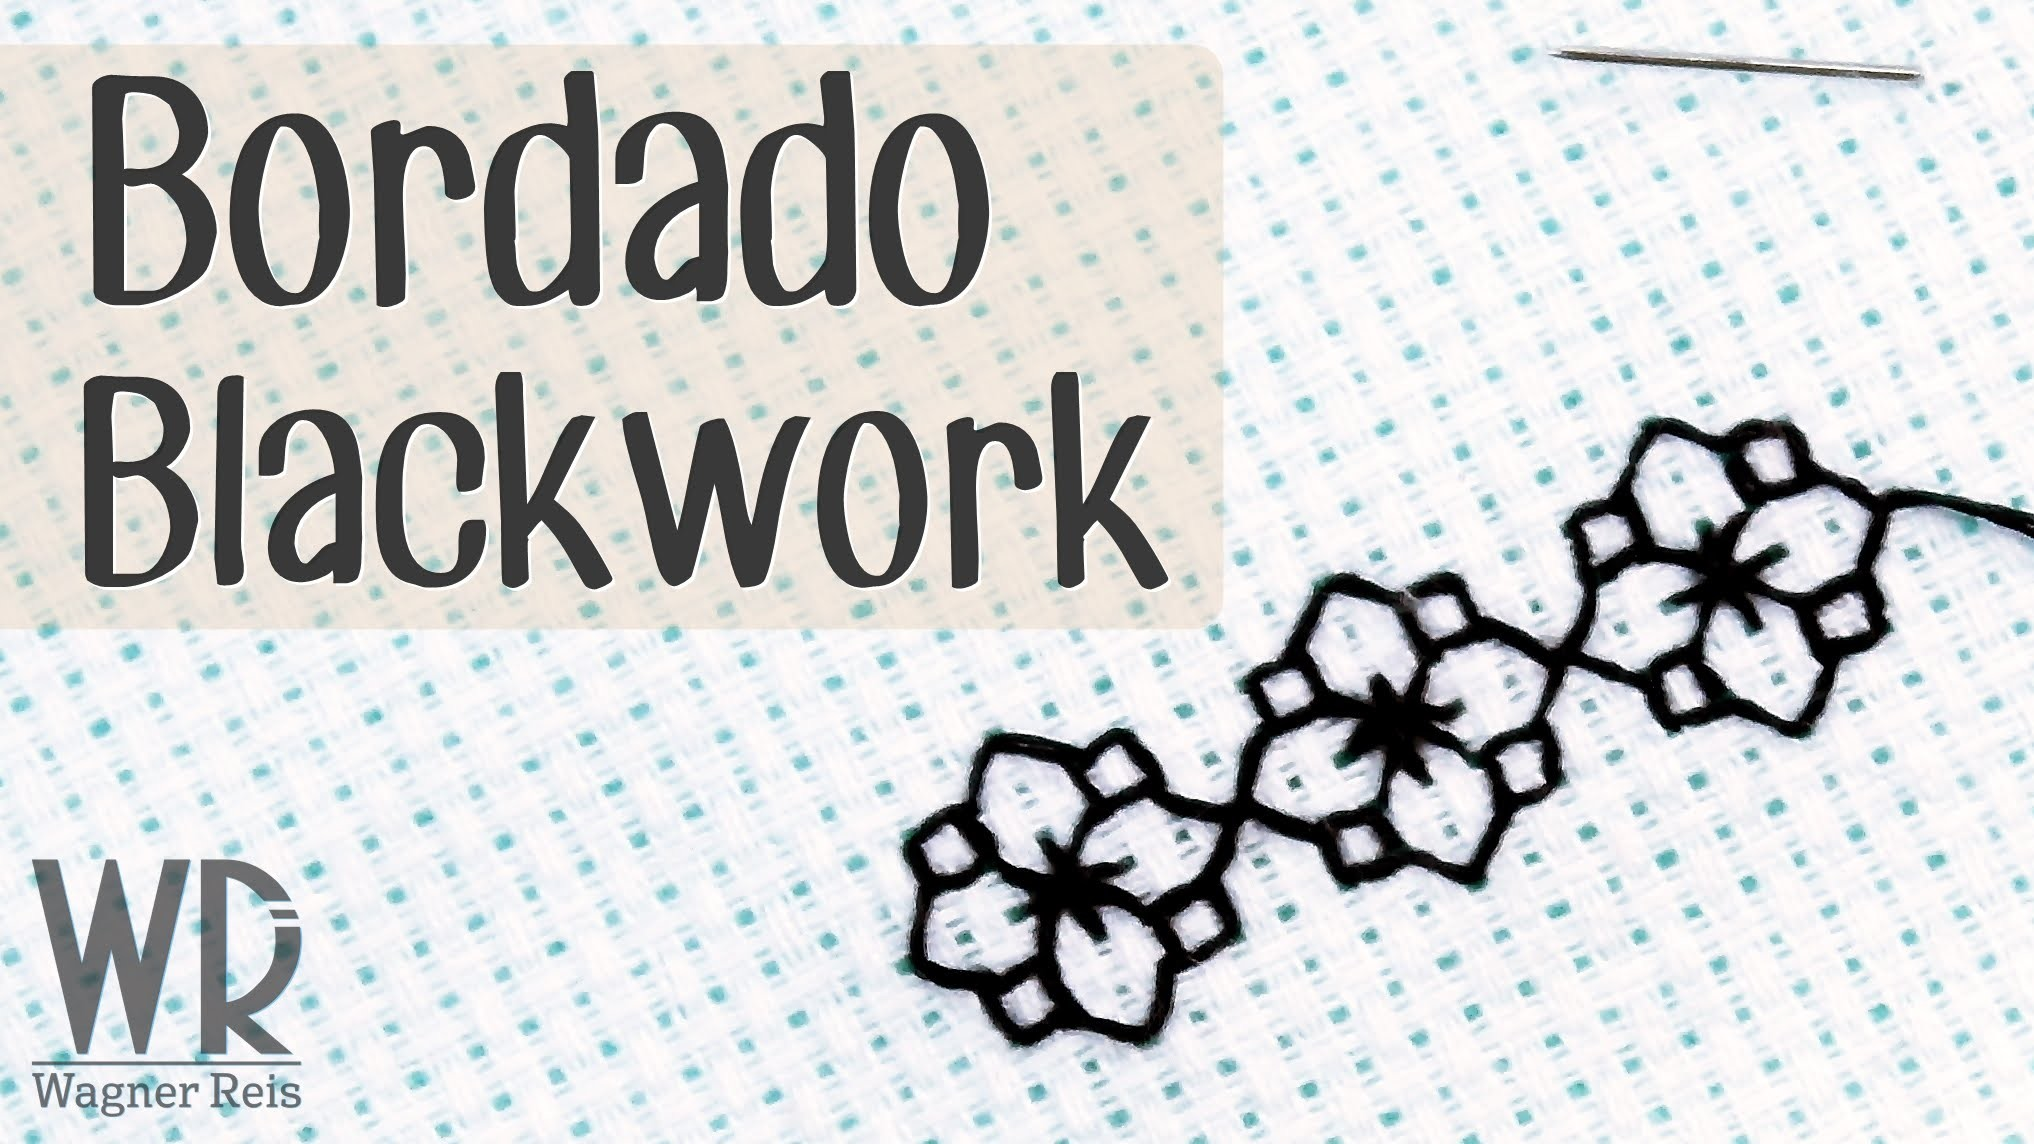 Bordado Blackwork - Tutorial completo